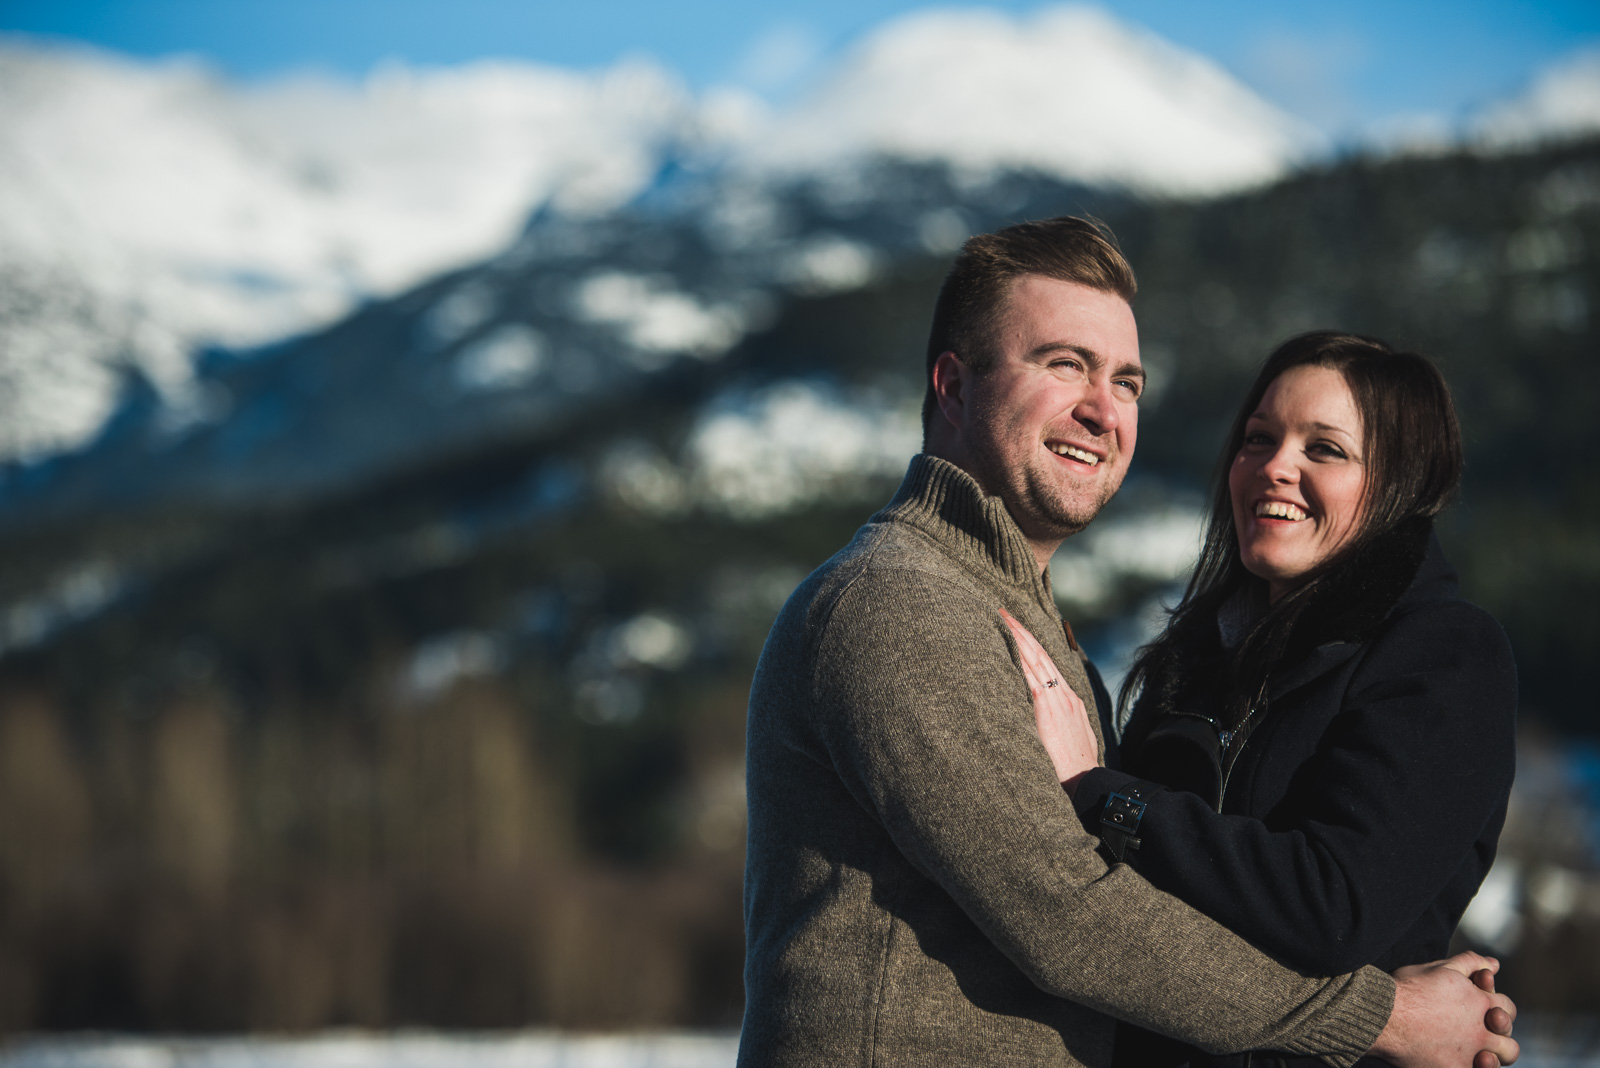 winter-whistler-engagement-whistler-wedding-photographer-green-lake-engagement-8.jpg